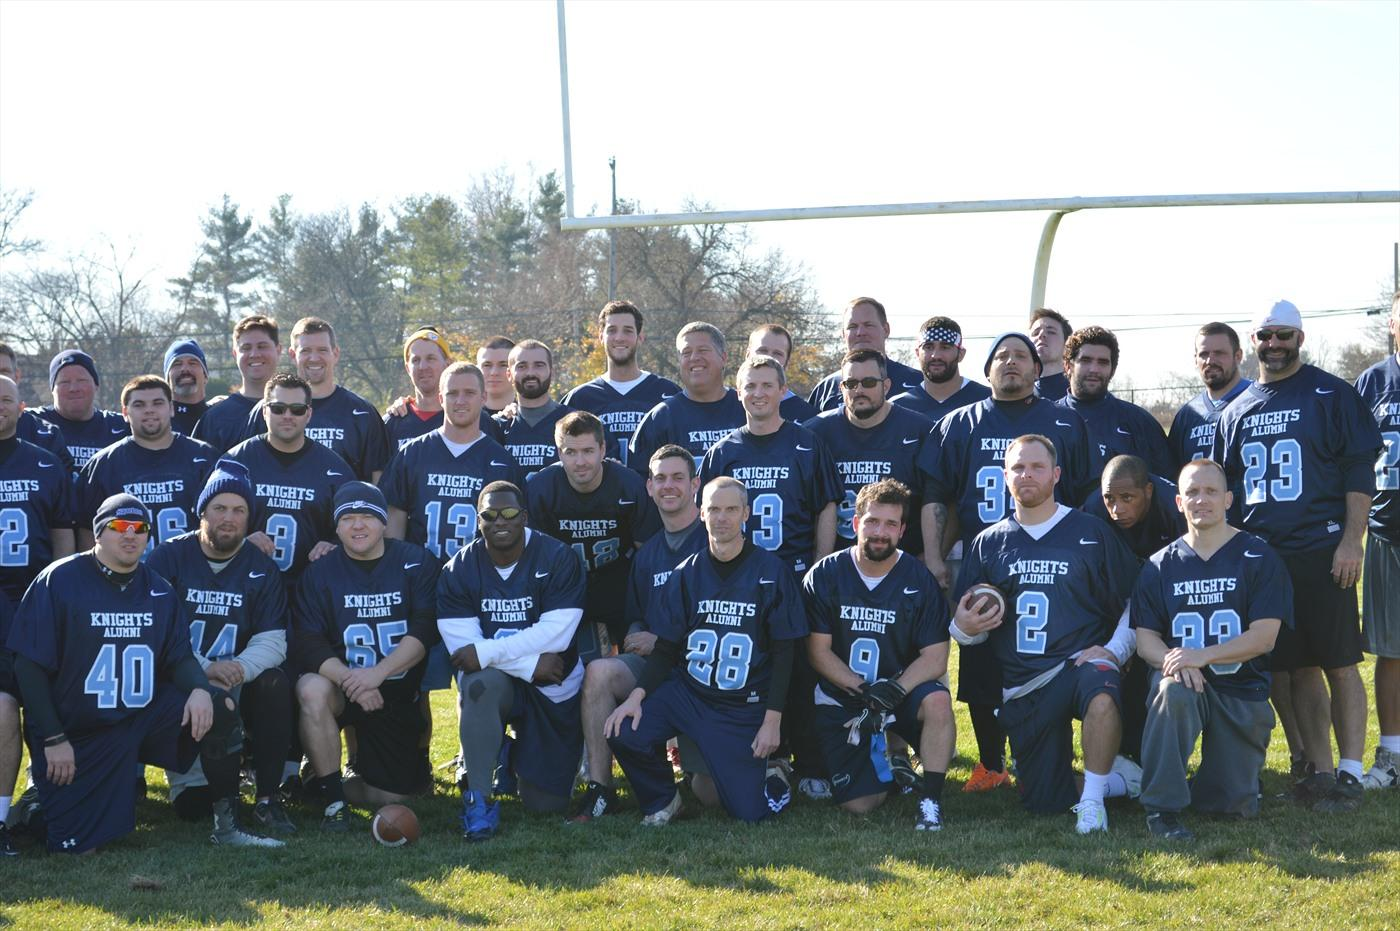 Are you ready for some football? Alumni NP football players gather for a team picture after the 2015 Thanksgiving Day Alumni football game. 2016 will mark the 2nd annual alumni game. Registration is now open.